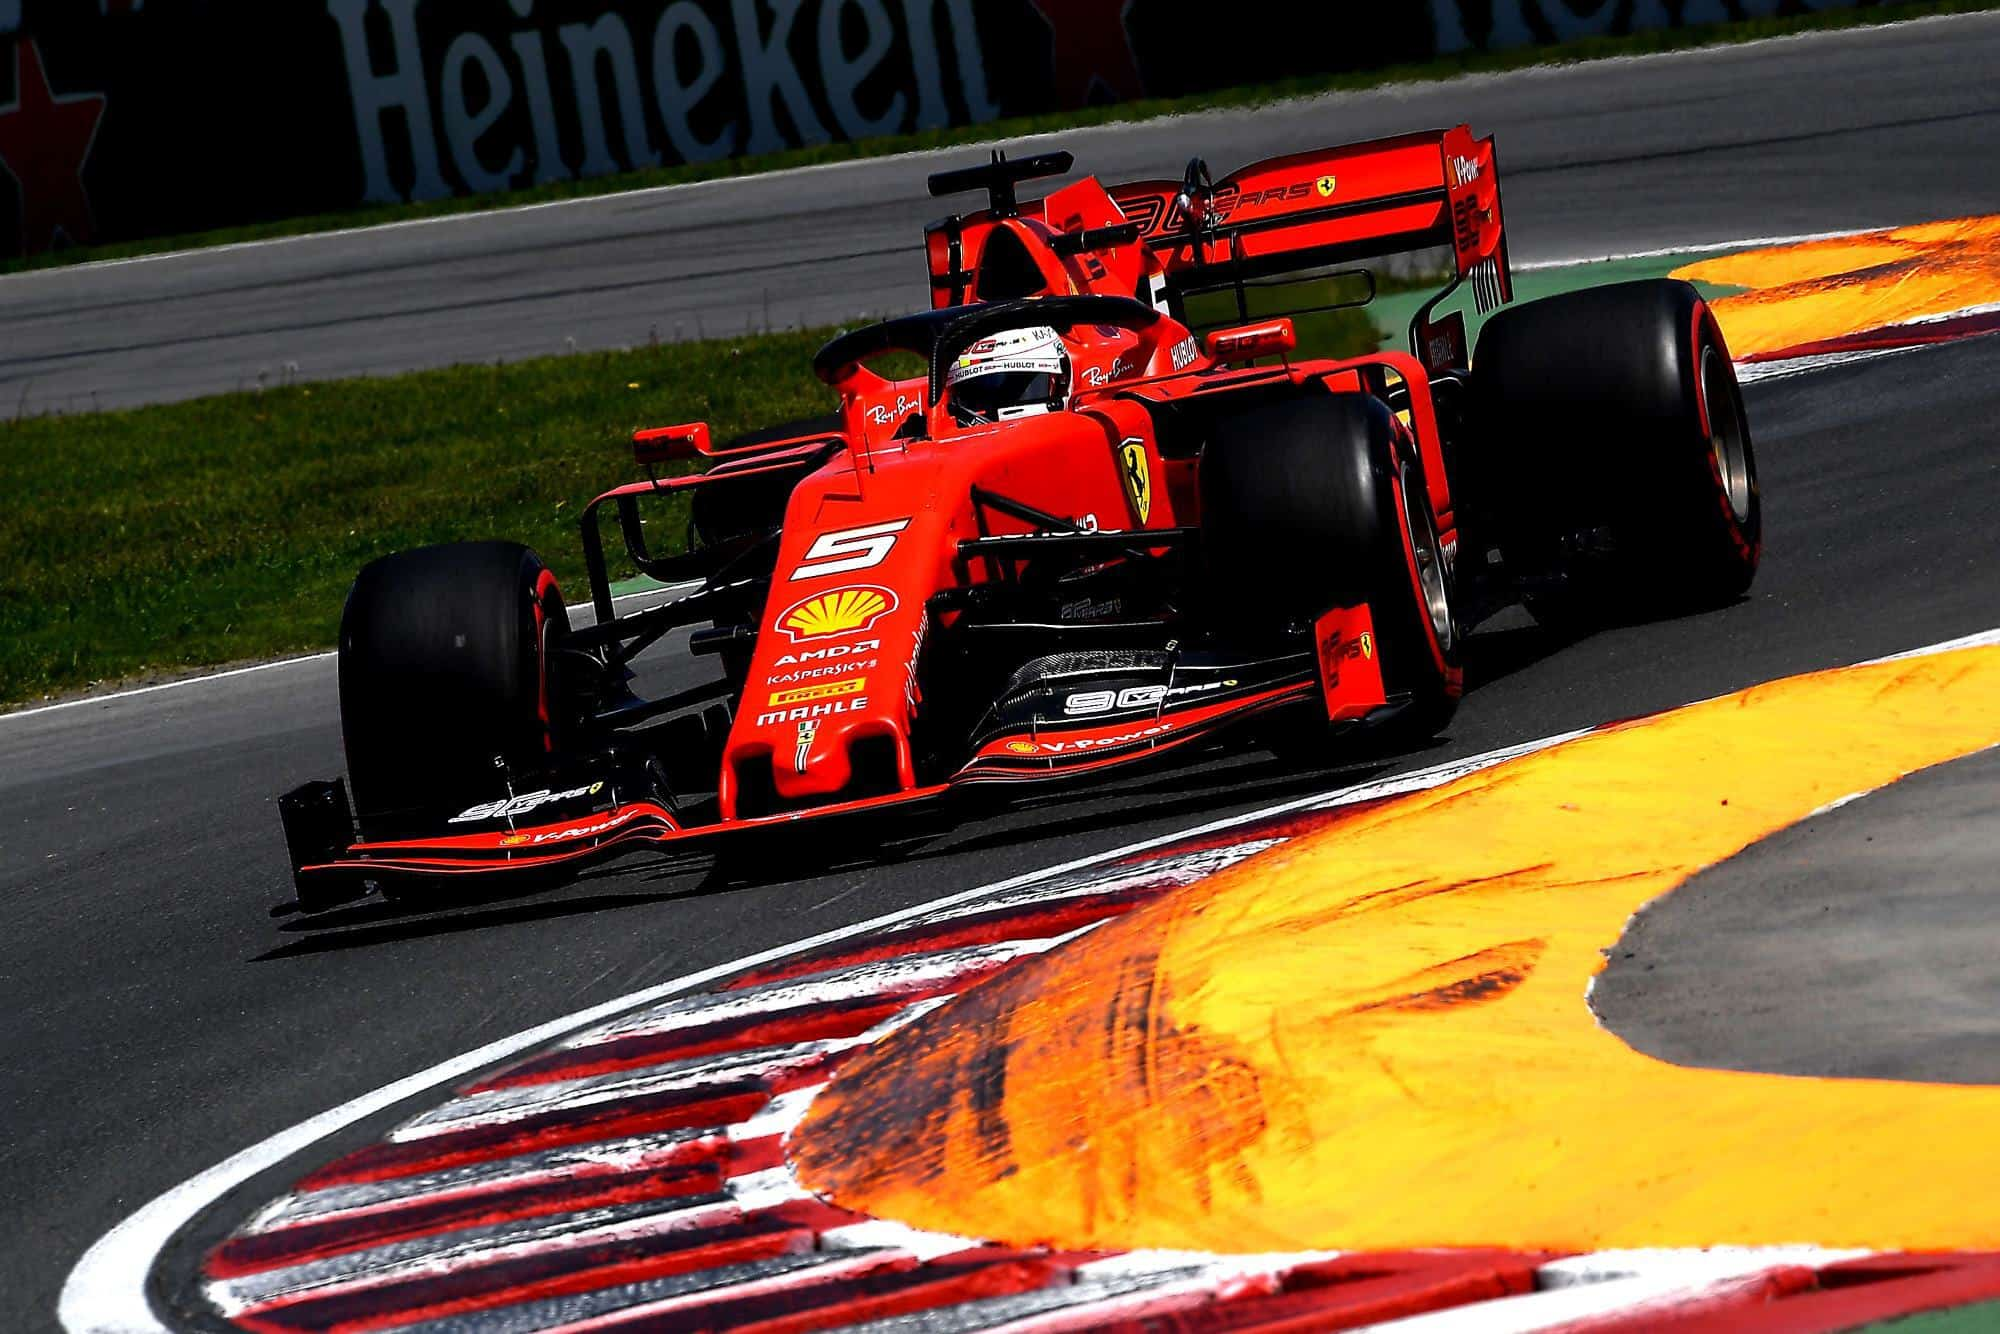 Sebastian-Vettel-Ferrari-Canadian-GP-F1-2019-final-chicane-Photo-Ferrari